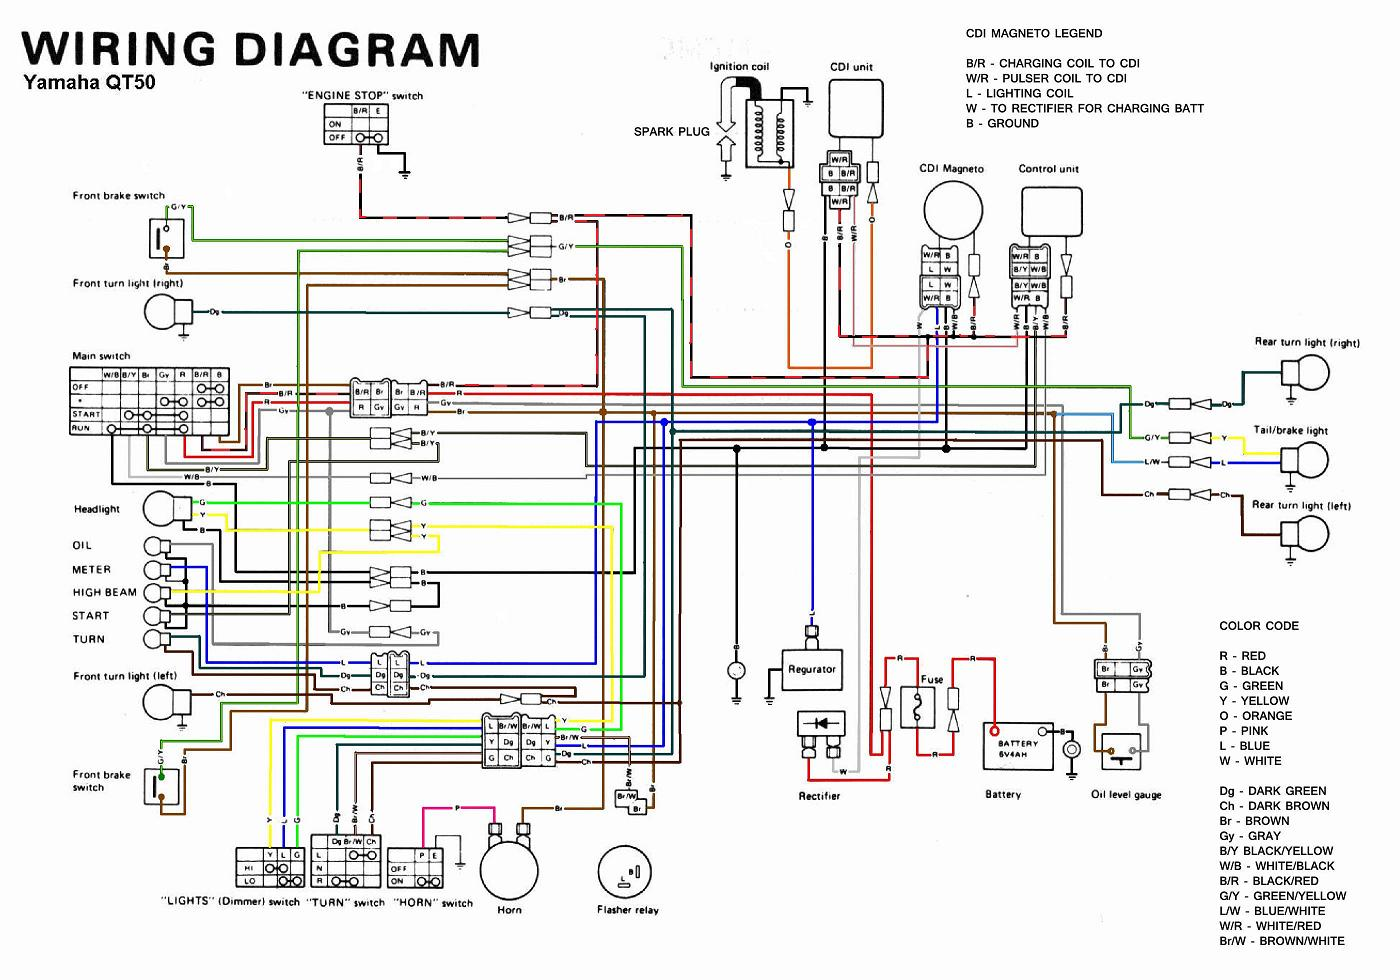 yamaha qt50 wiring diagram yamaha qt50 luvin and other nopeds rh qt50 net yamaha wiring diagrams marine harness yamaha motorcycle wiring diagrams